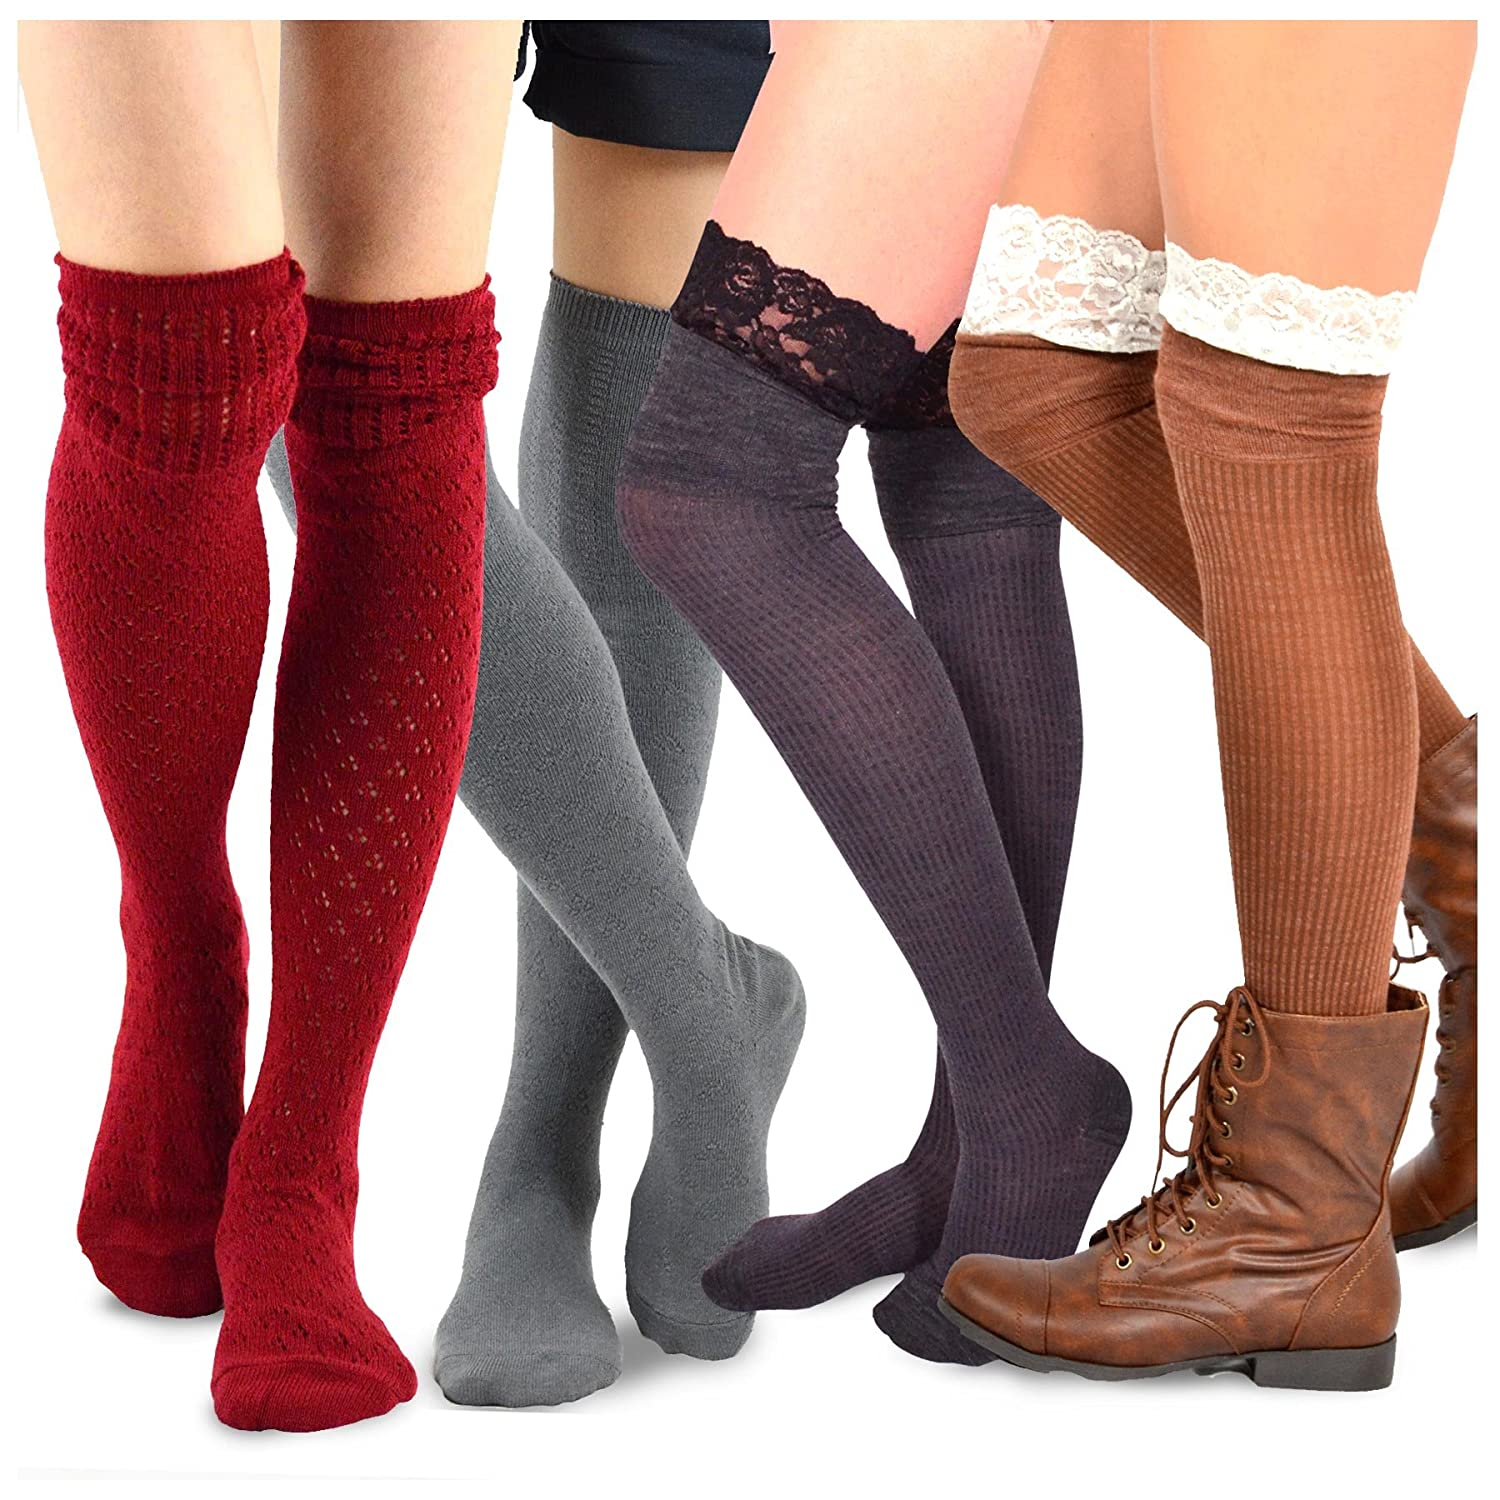 TeeHee Women's Fashion Over the Knee High Socks - 4 Pair Combo soxnet Inc 10850-10860-A09-4P Combo